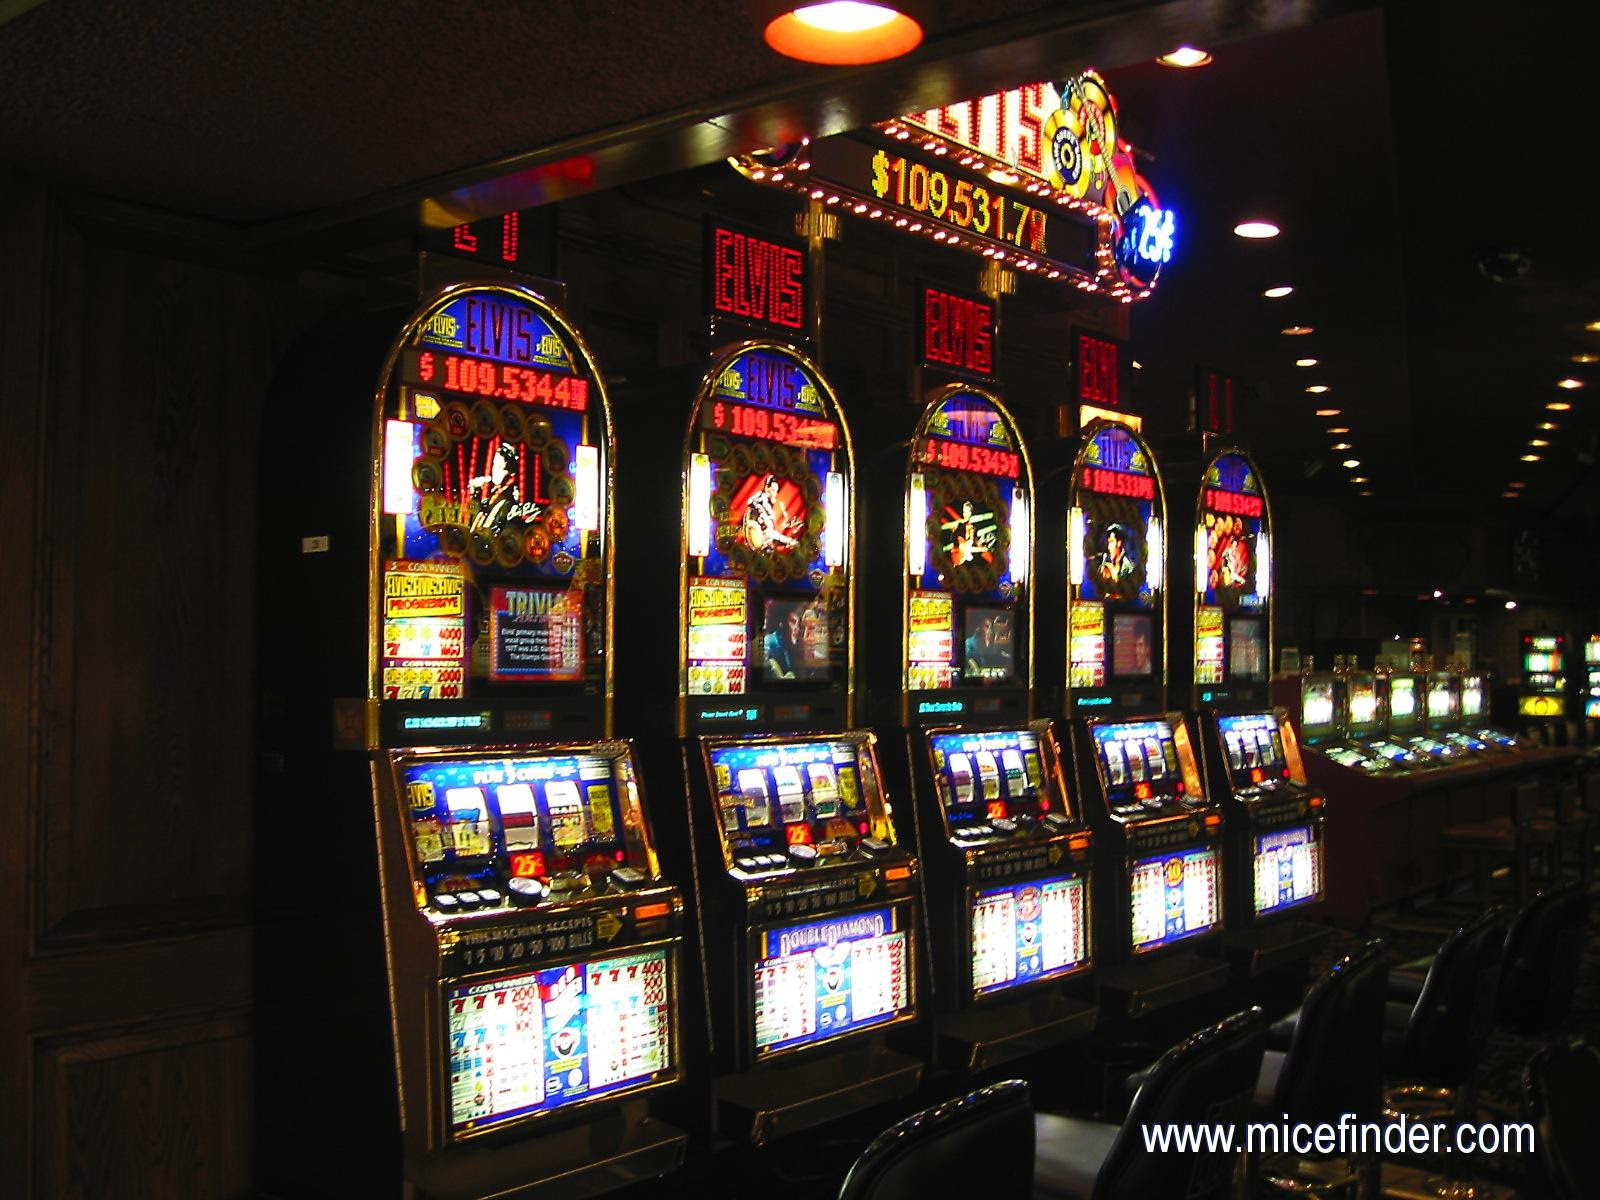 You will find that many Las Vegas Casinos are owned by the same company, and as such the slot and casino comp cubs at a lot of Las Vegas casinos tend to be the same ones.However, with some shopping and hunting around you can find some unique standalone slot clubs in Vegas.